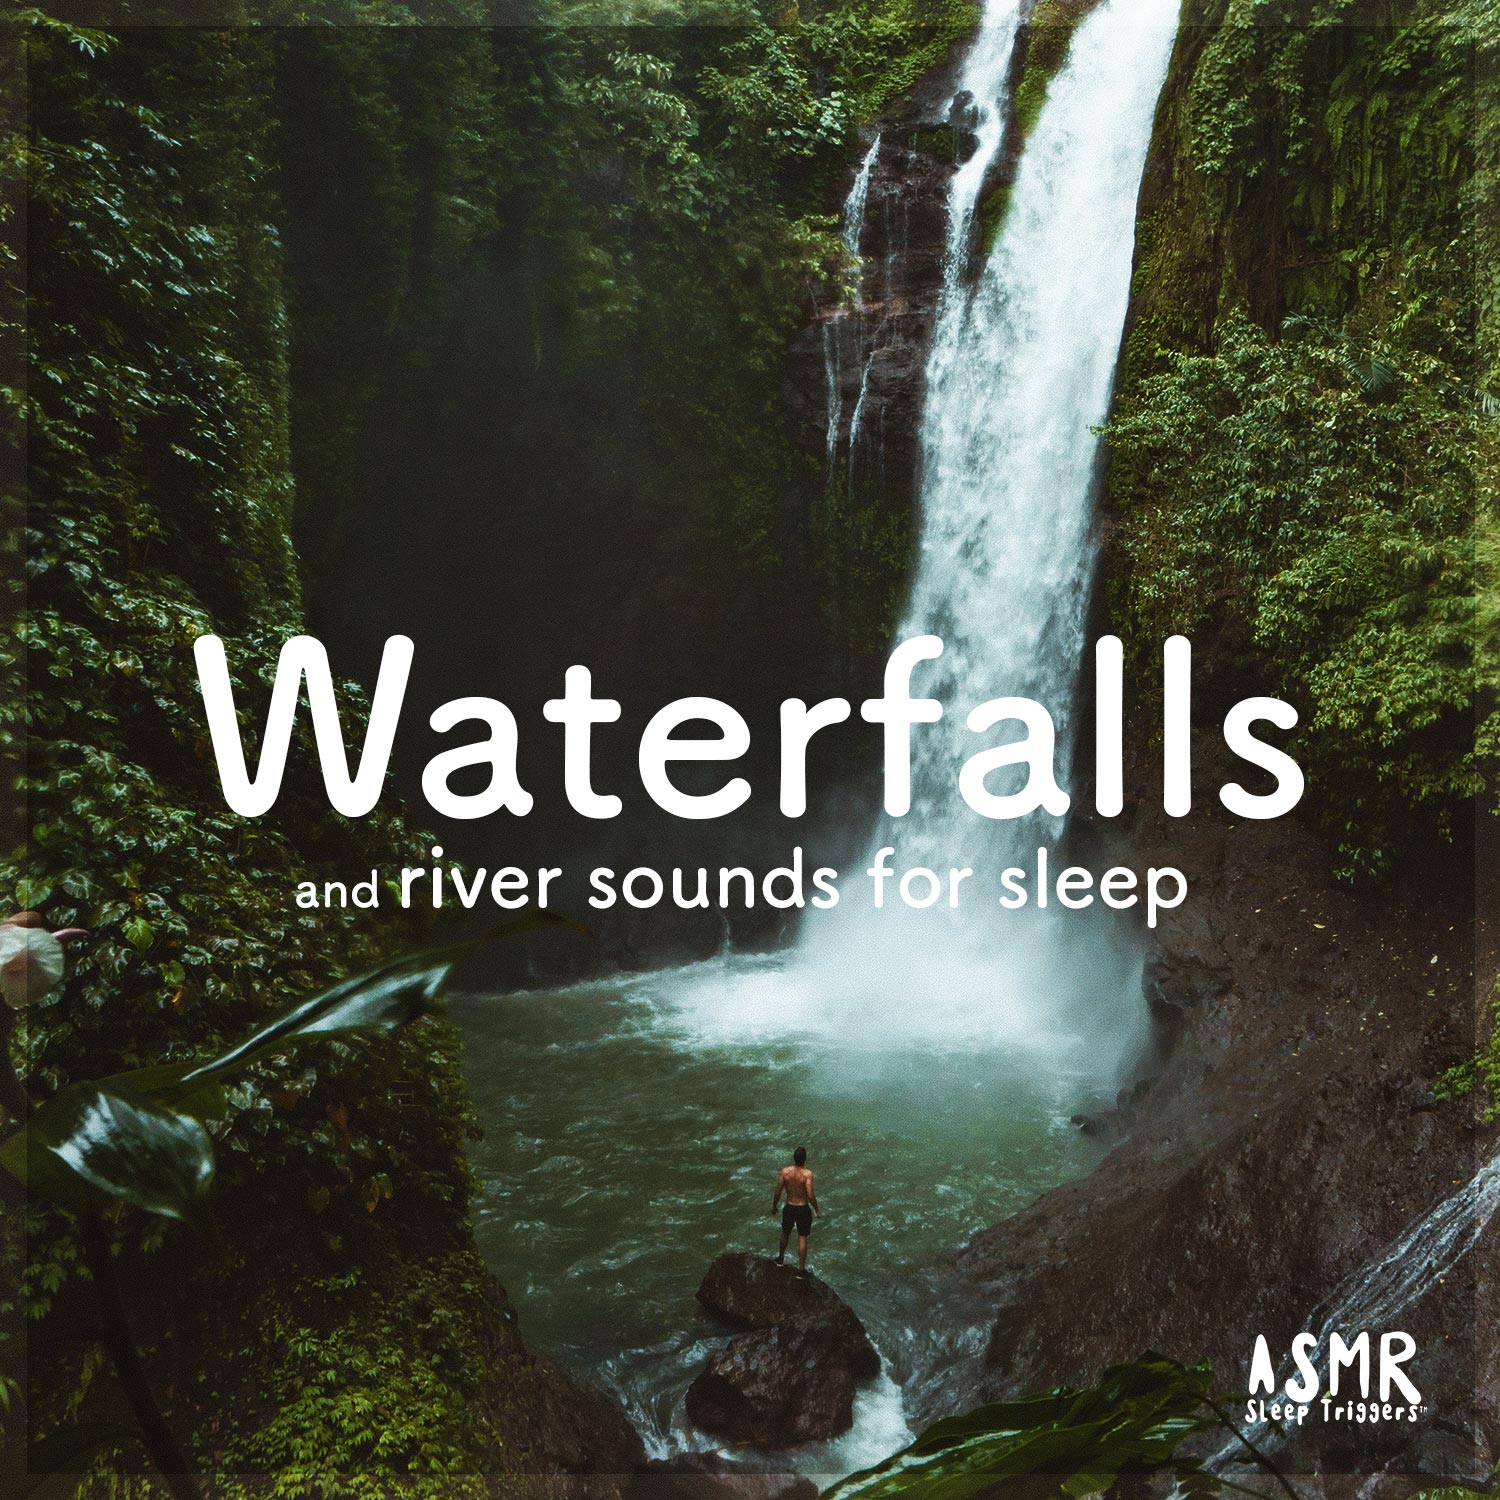 Waterfalls and river sounds NEW 02_Small.jpg